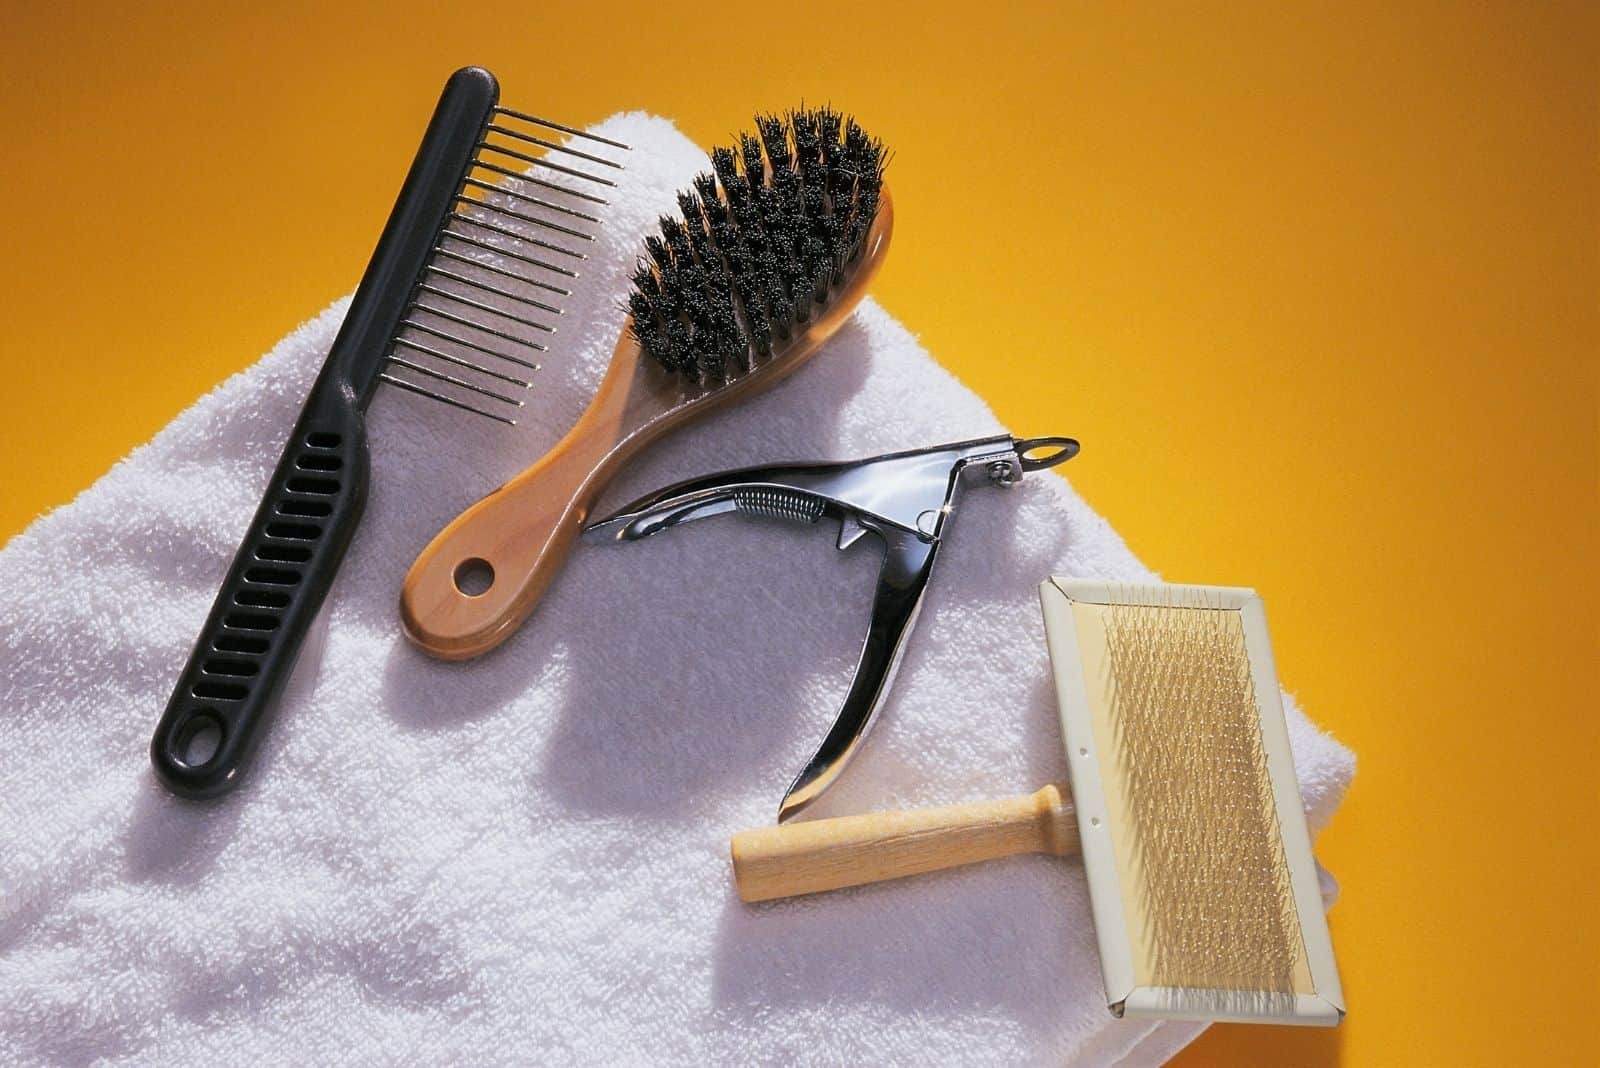 dog grooming tools placed in the white towel